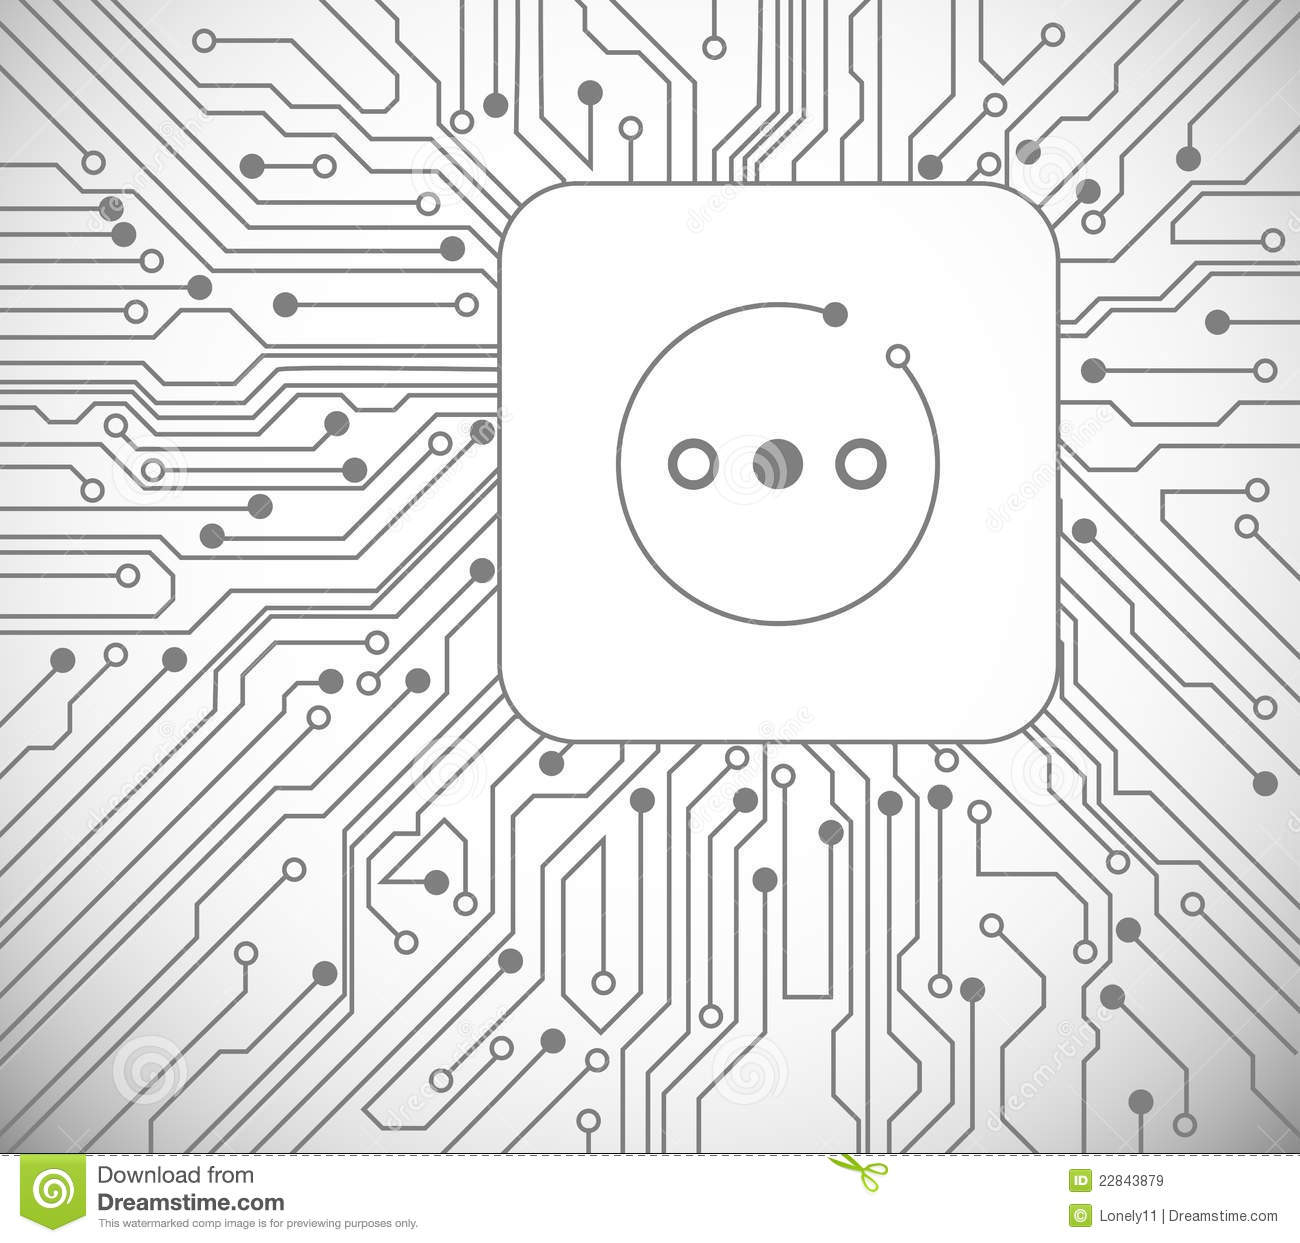 circuit board and computer chip close up royalty free stock images